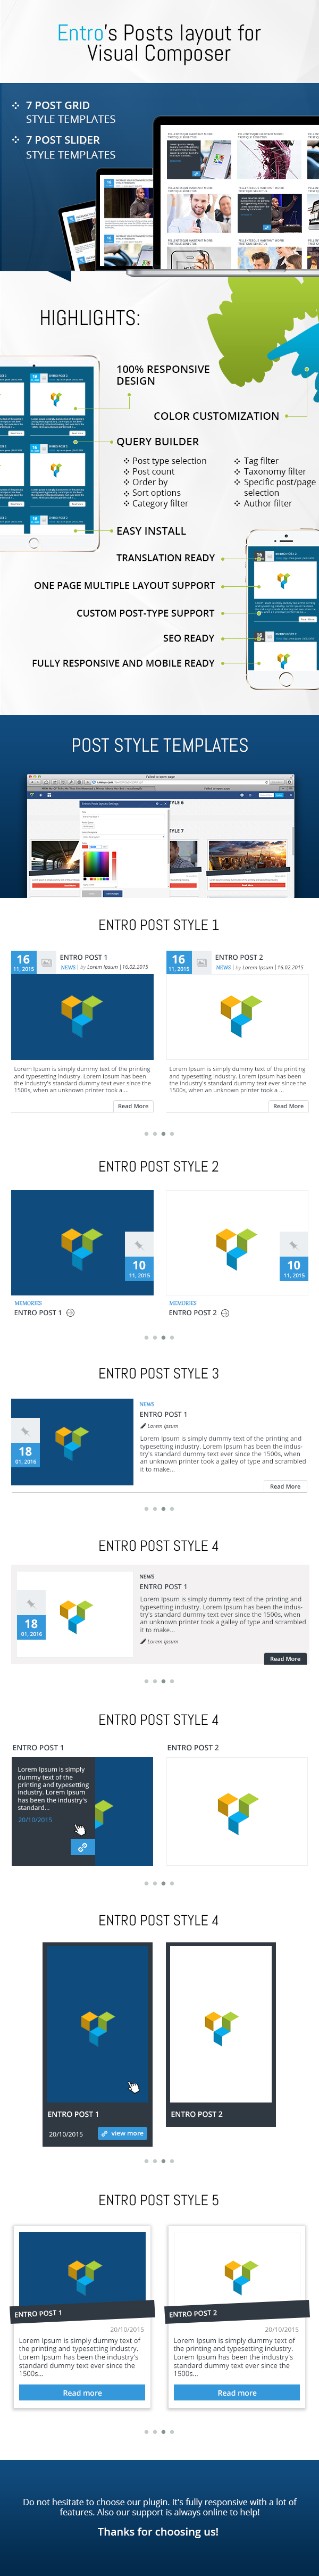 Entro's Posts Layout für Visual Composer